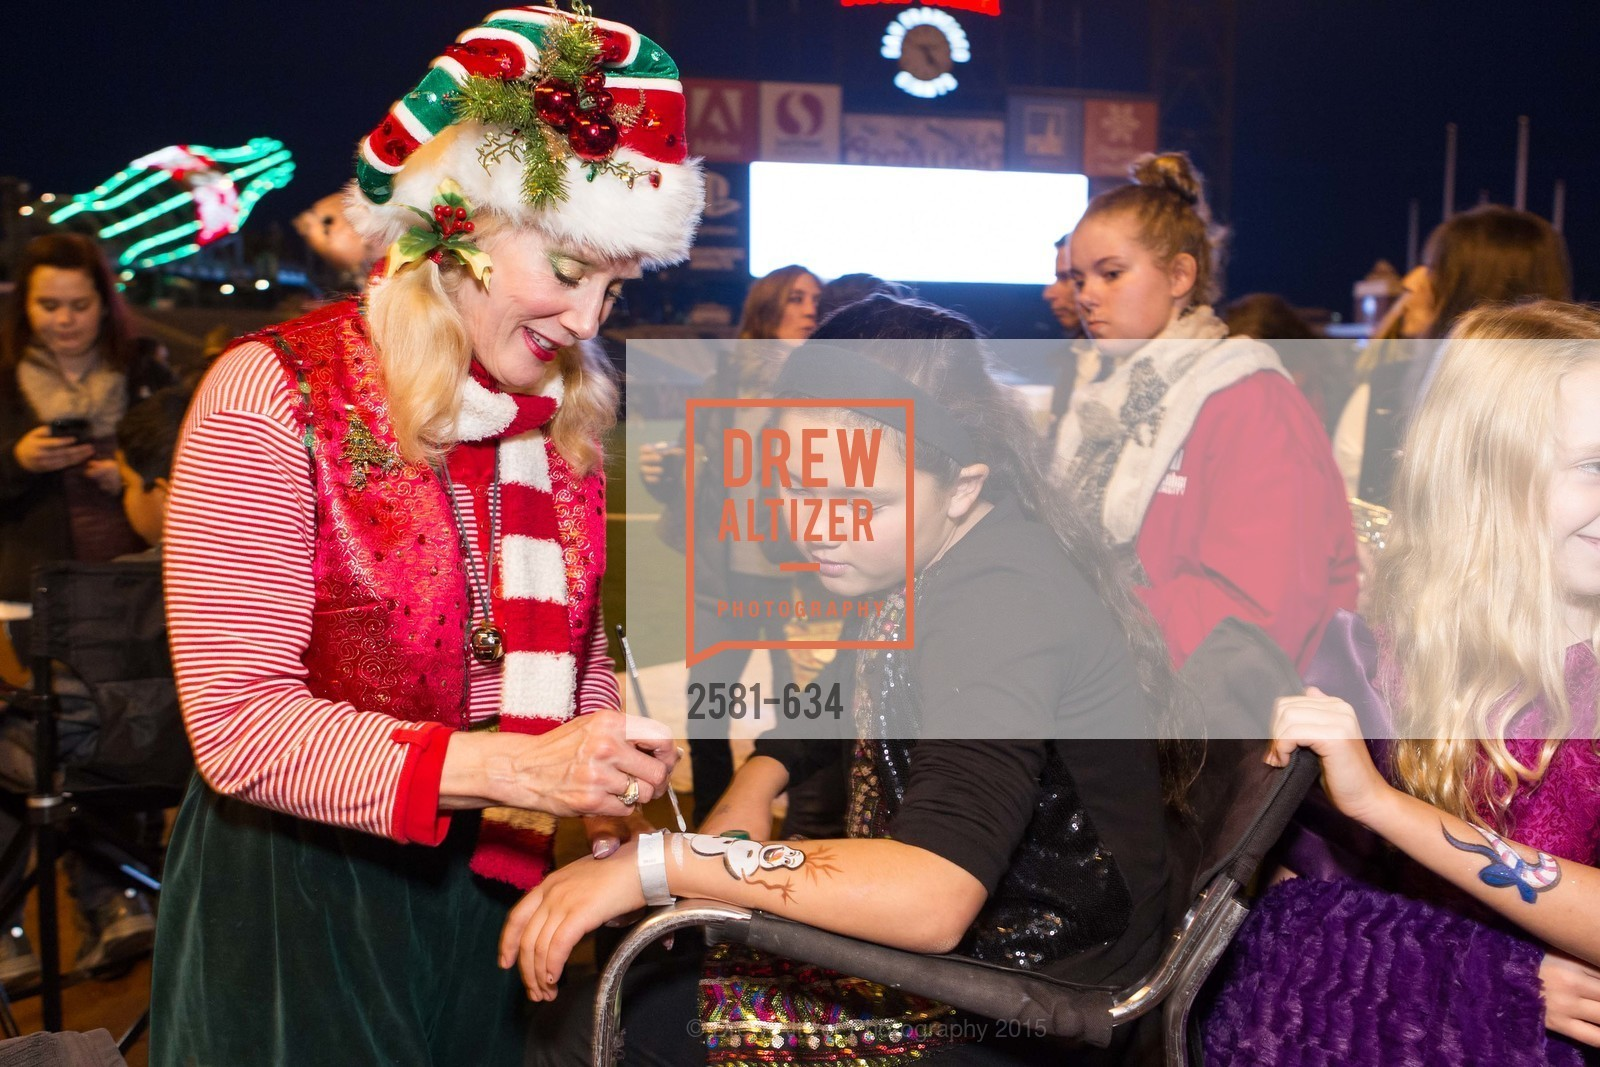 Sandra Leathley, Tess Gundacker, Holiday Heroes 2015, AT&T Park, December 7th, 2015,Drew Altizer, Drew Altizer Photography, full-service event agency, private events, San Francisco photographer, photographer California